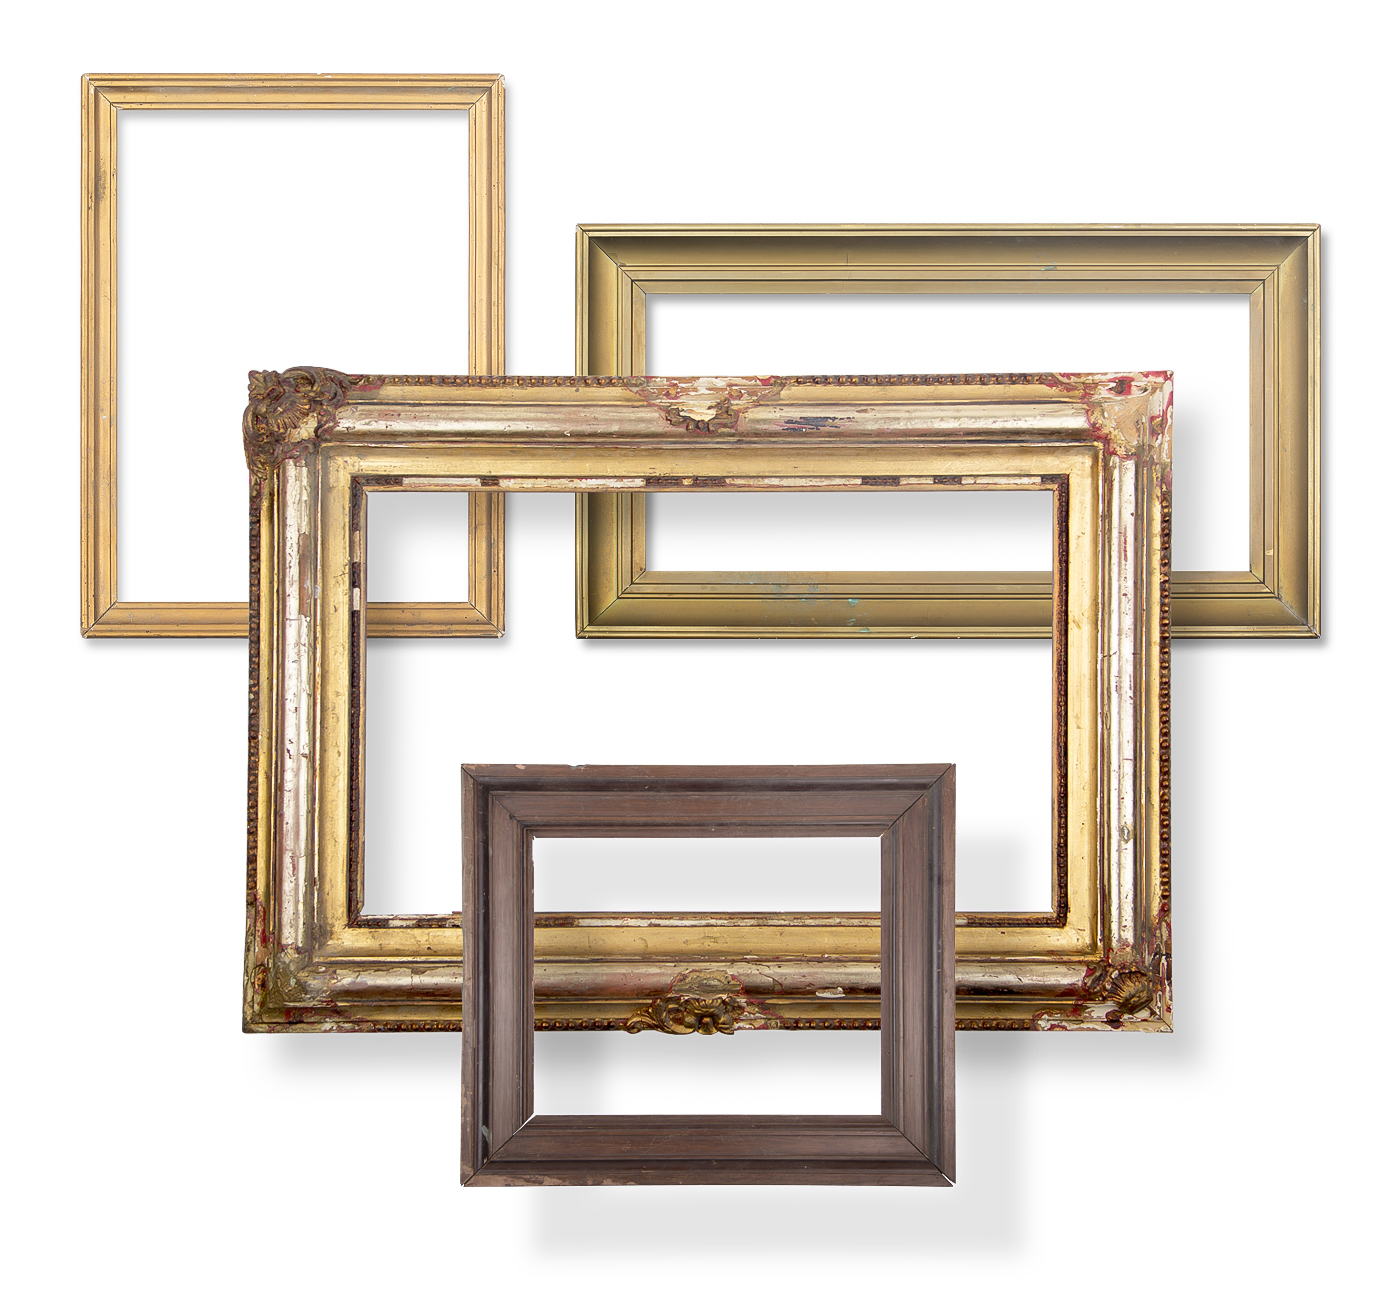 Frames. Sure! - You can not imagine an artwork presentation without frame mock ups. We've got many hand crafted and old frames. Suits great with other items.Full Preview